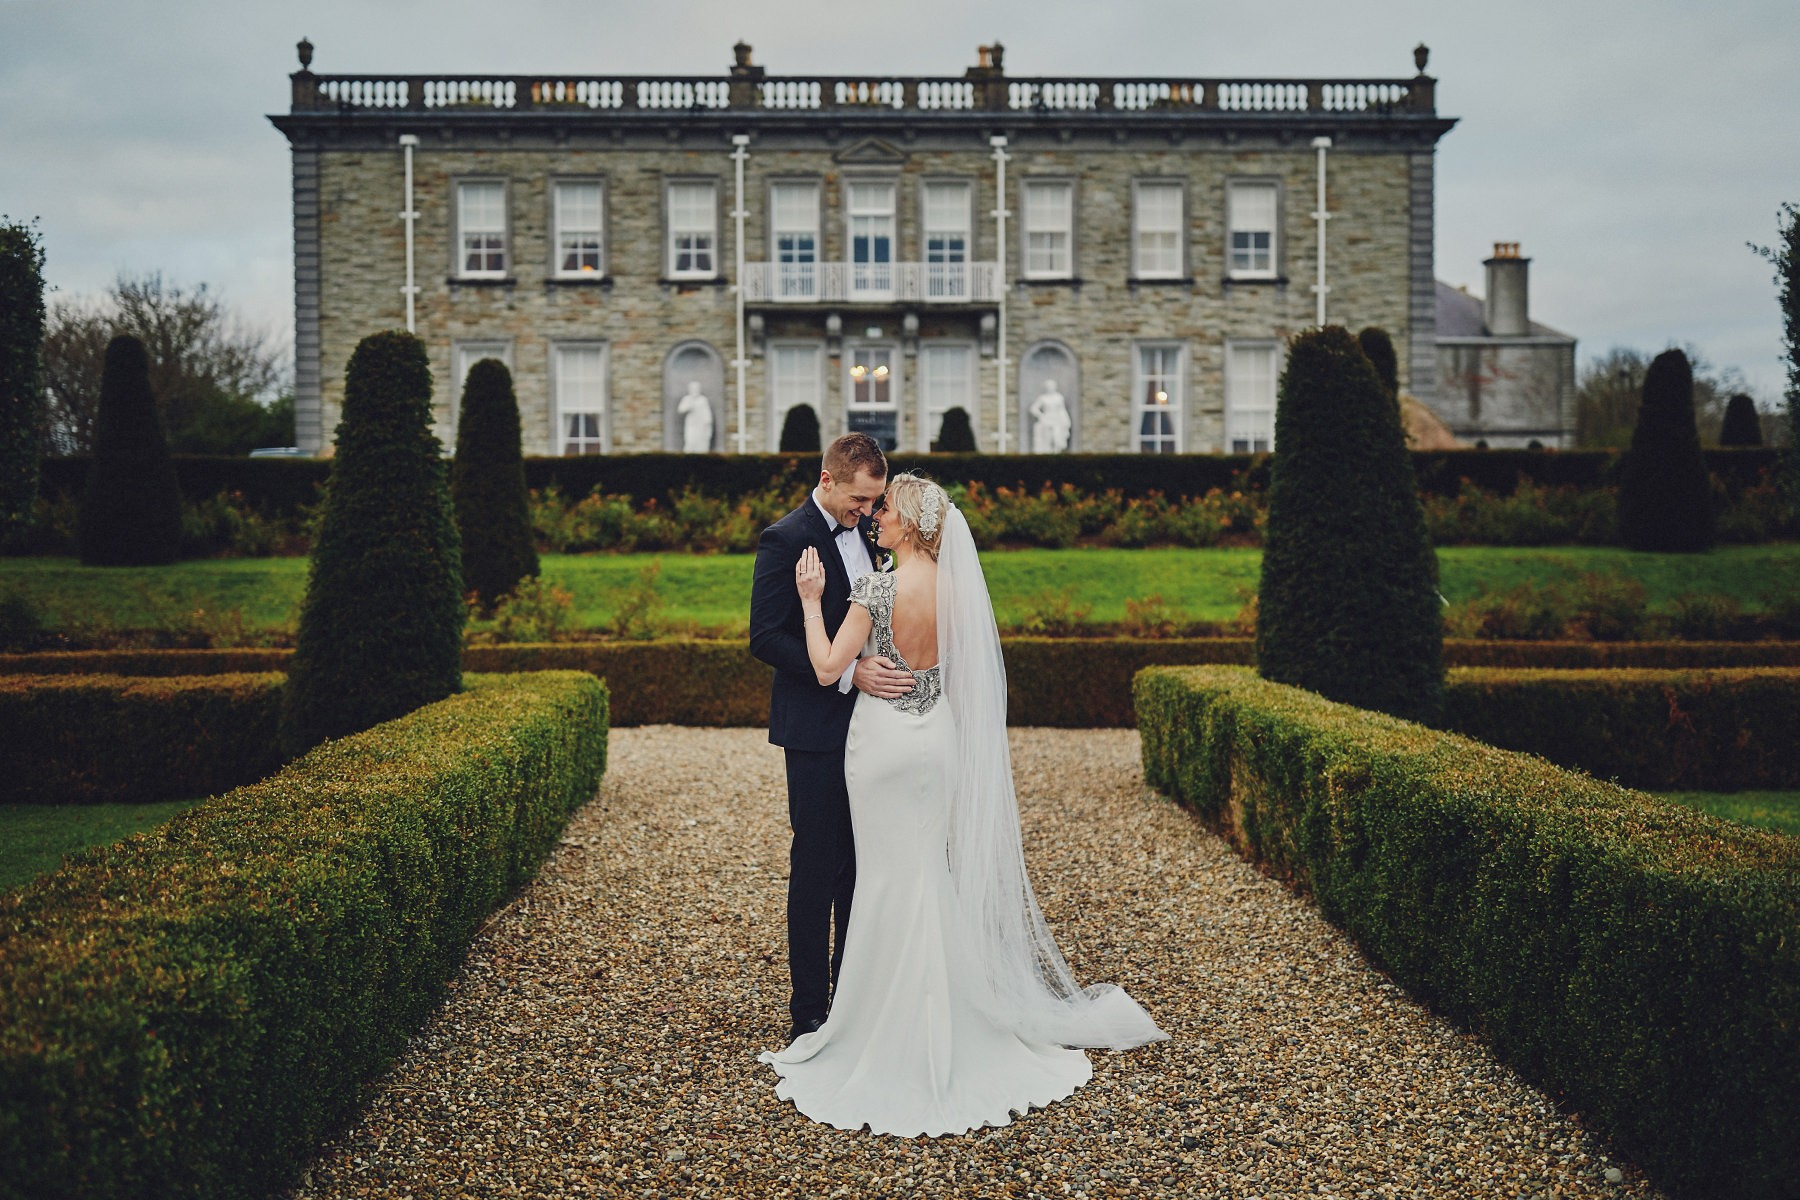 Perfect Wedding Venue close to Dublin? Palmerstown Estate